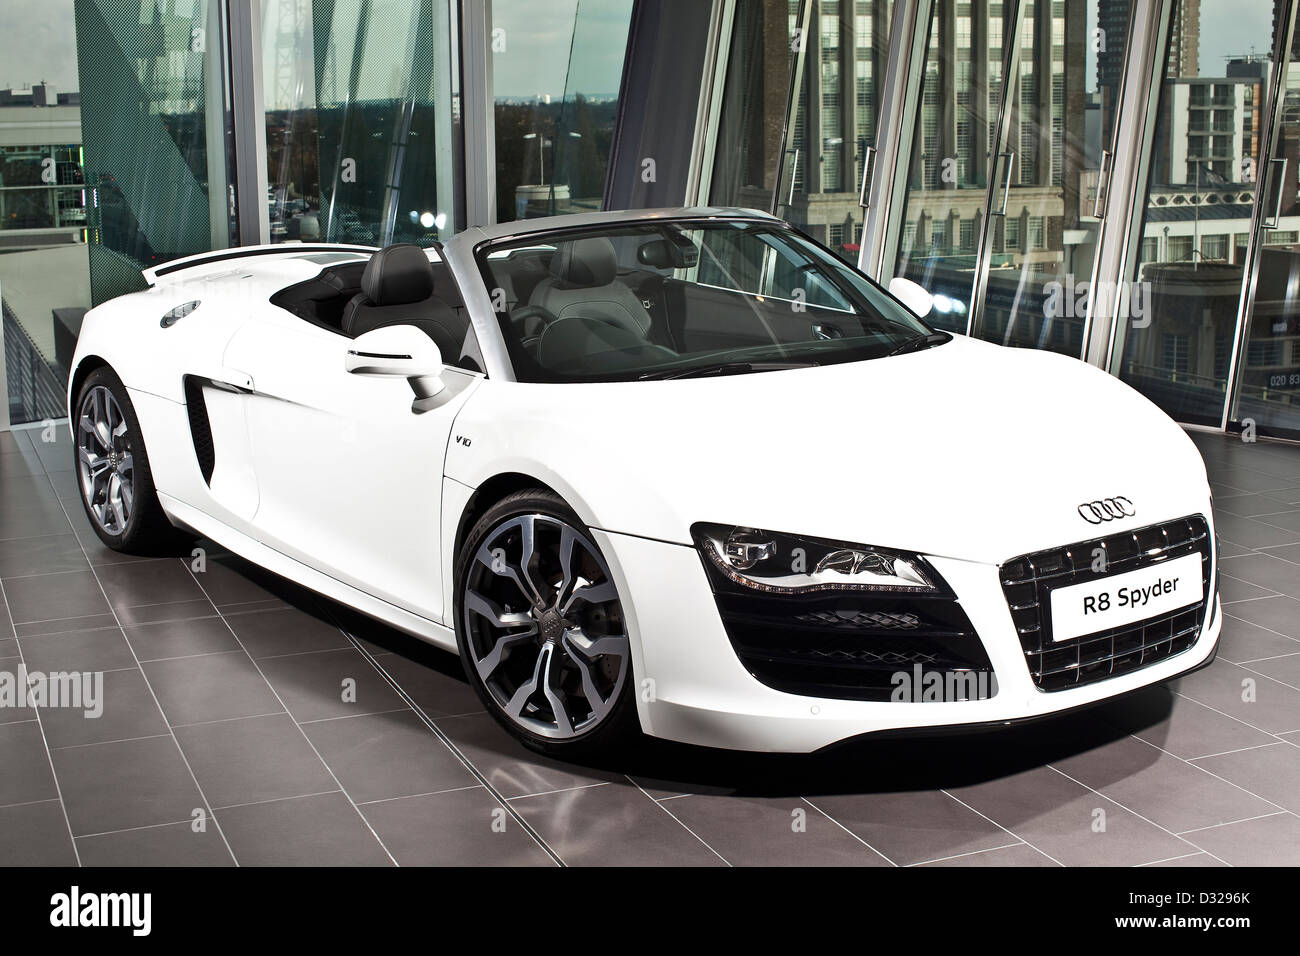 white audi r8 spyder in car showroom, richmond, england, uk stock